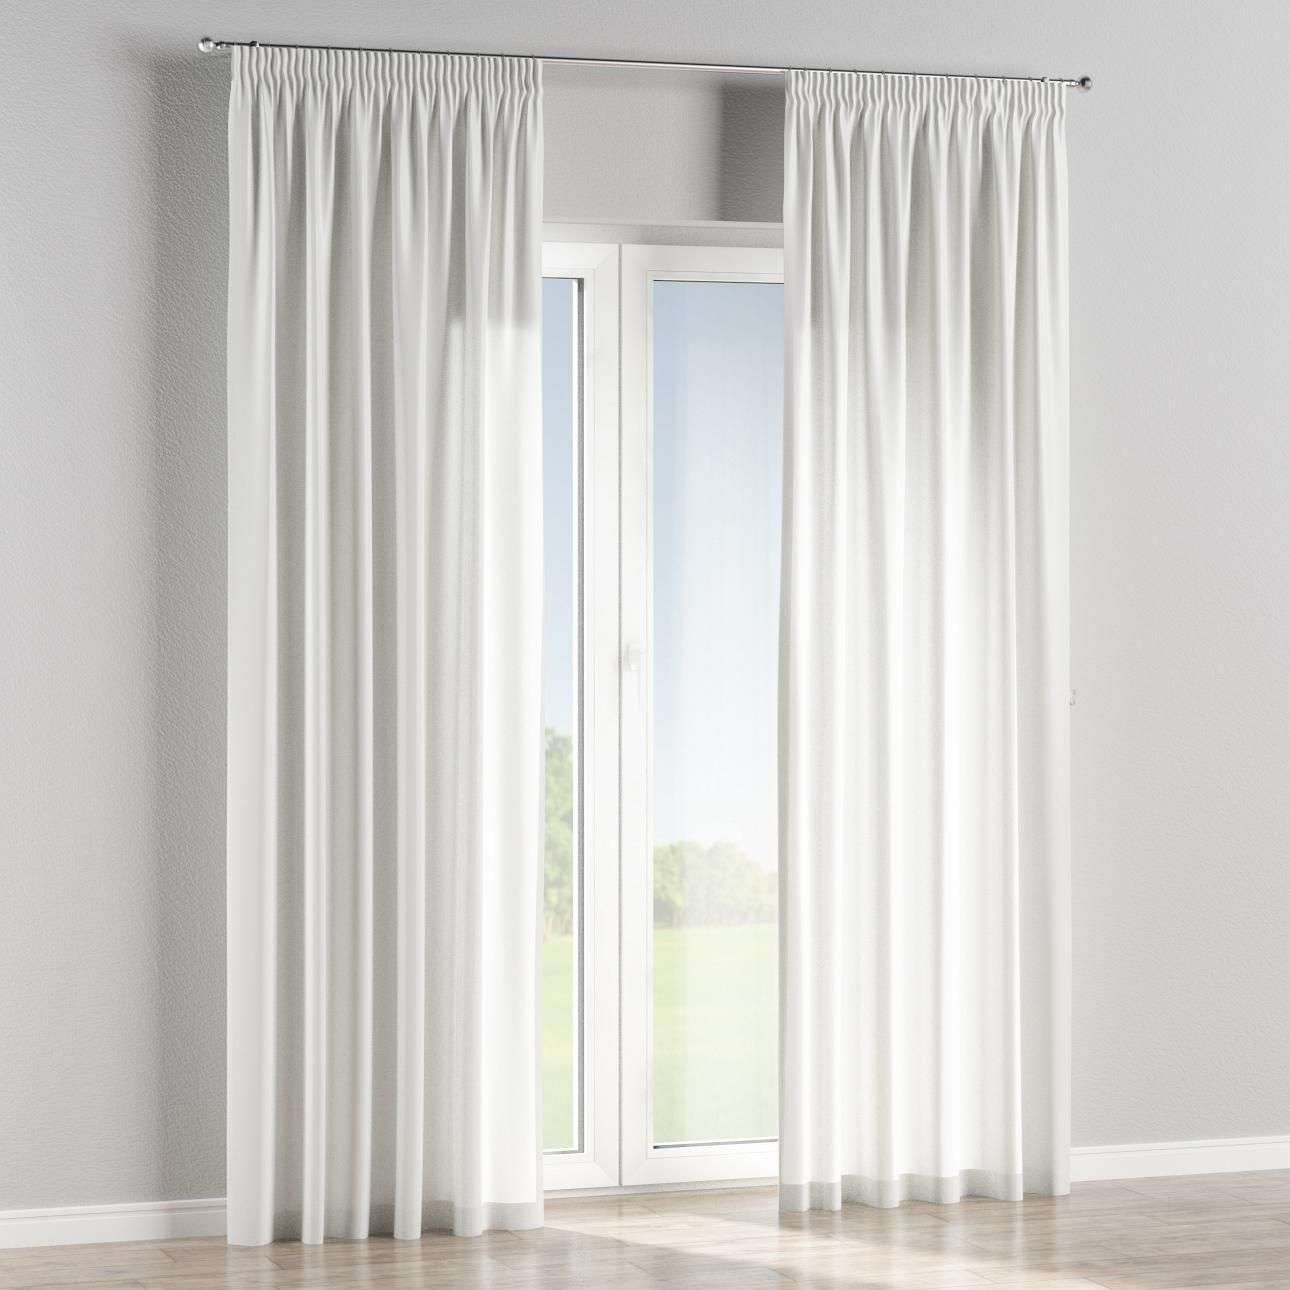 Pencil pleat curtains in collection Mirella, fabric: 143-06